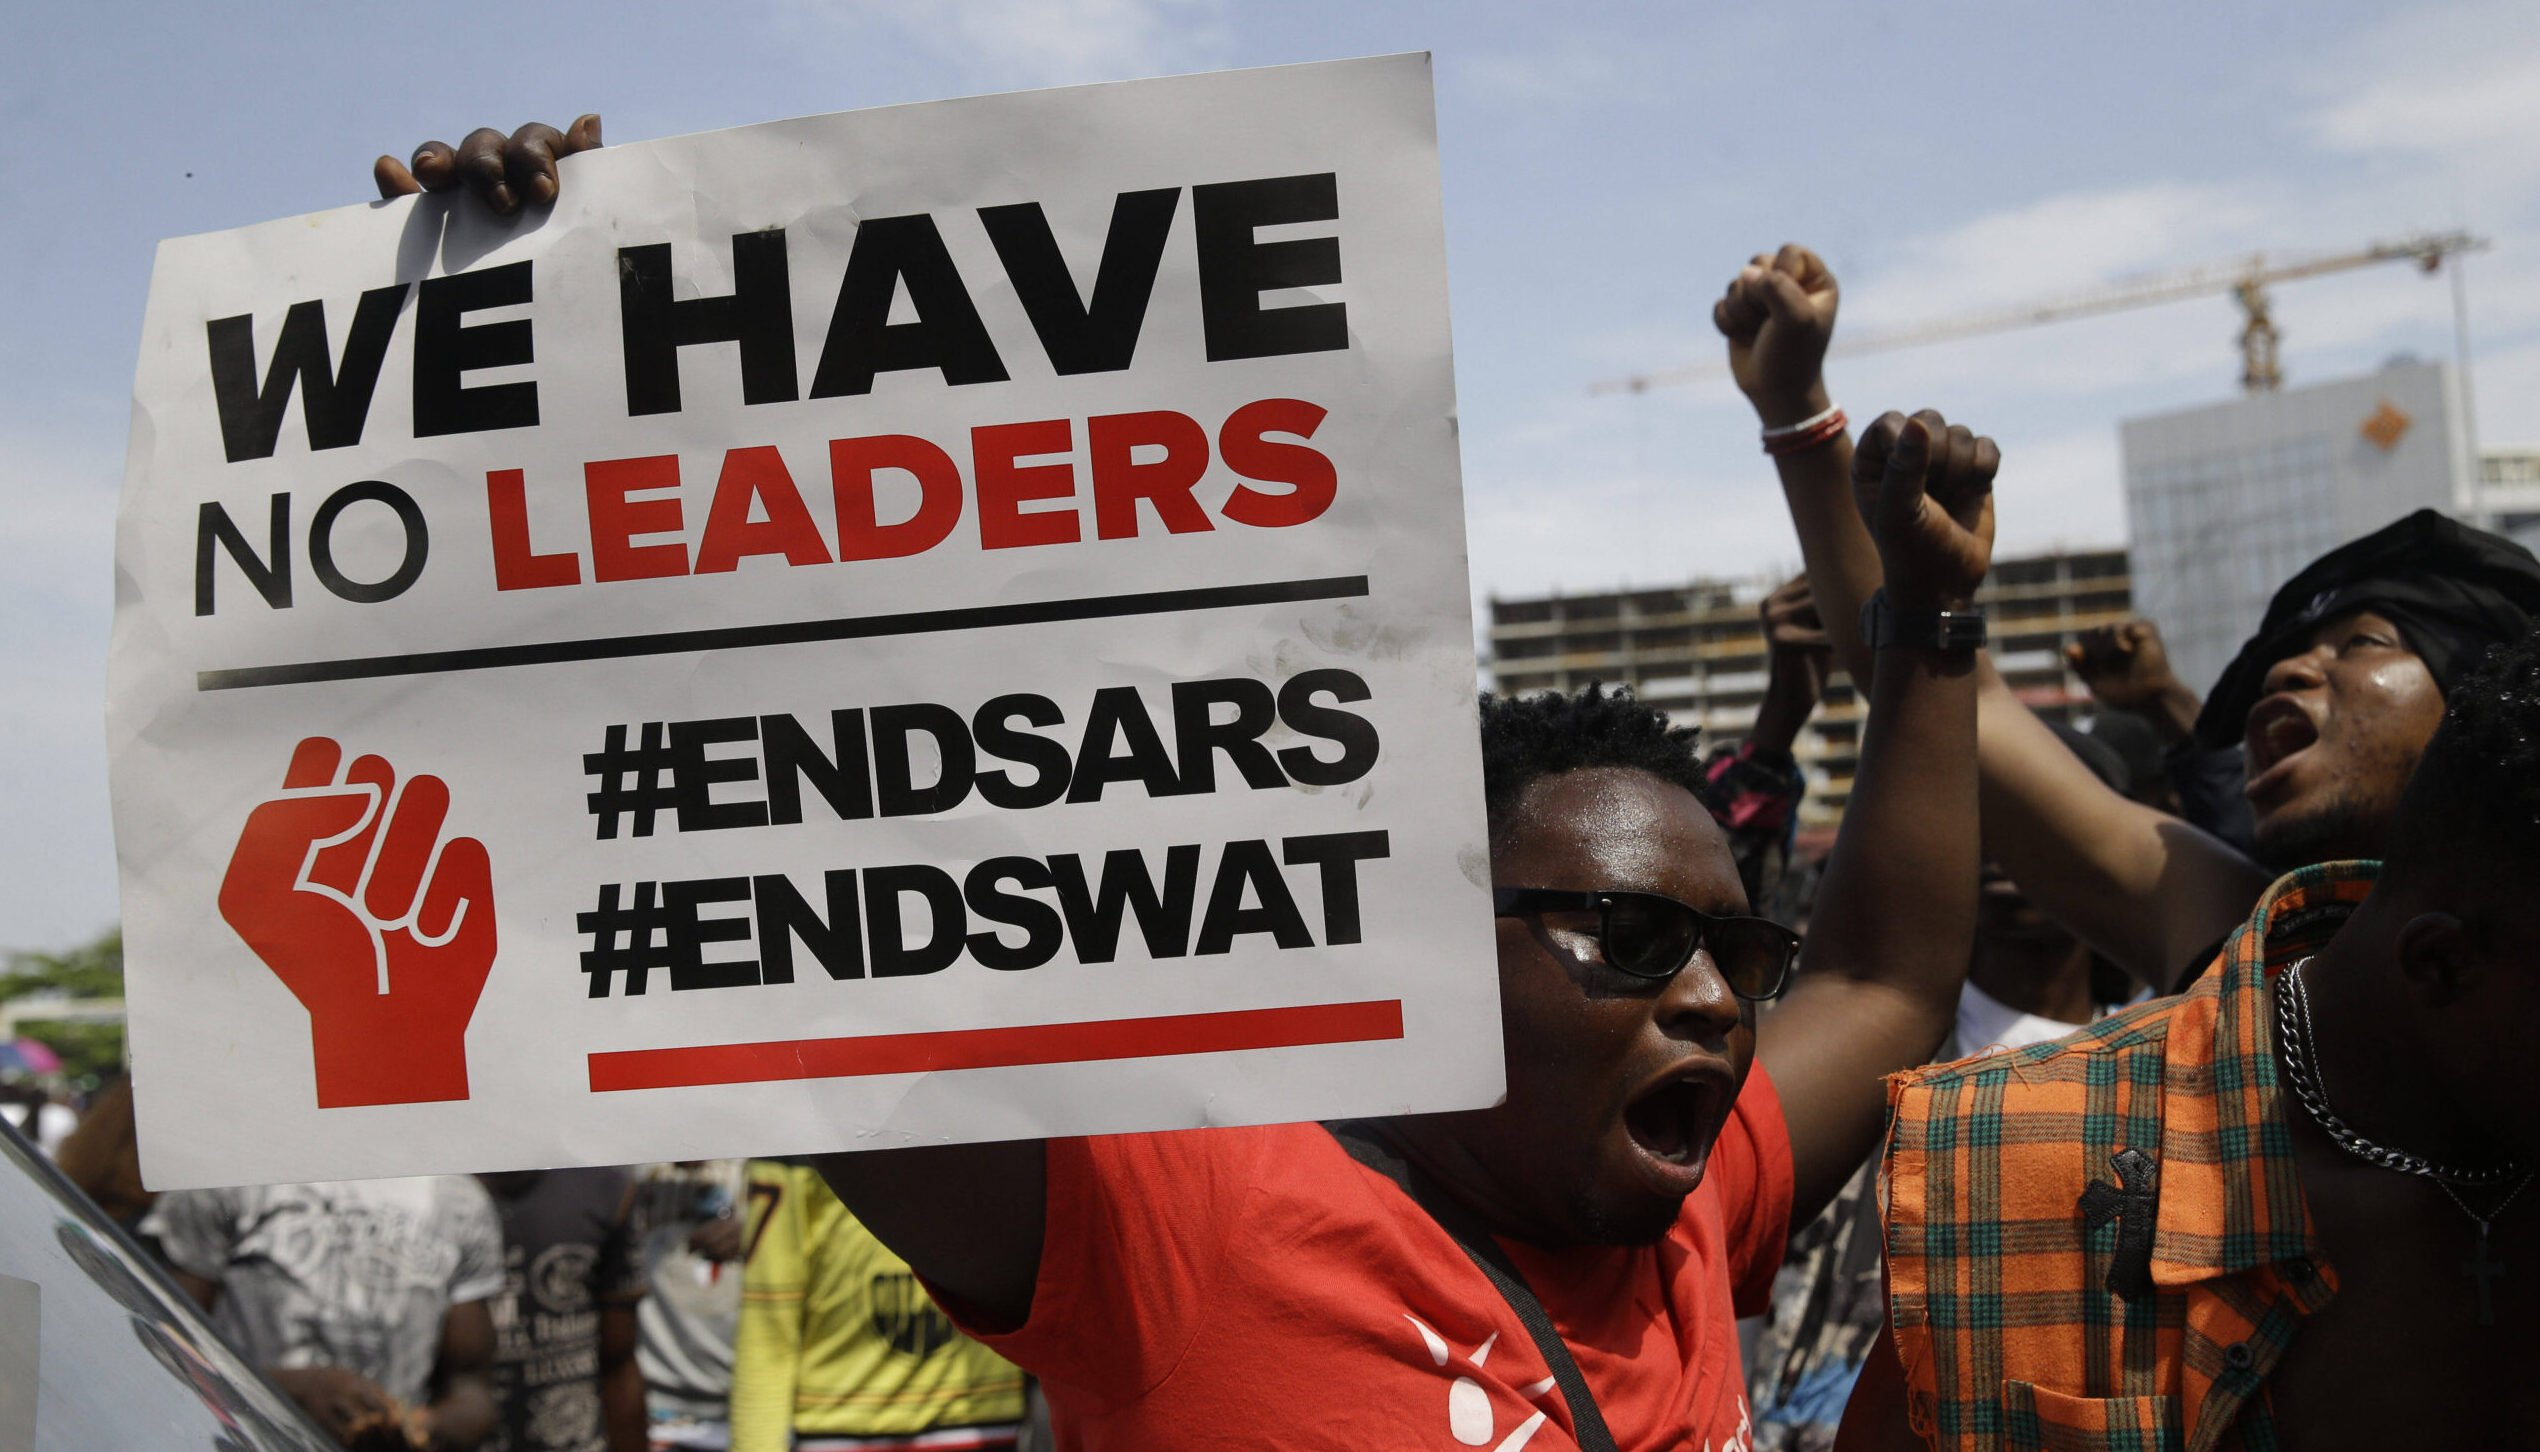 SARS And The #Endsars Movement